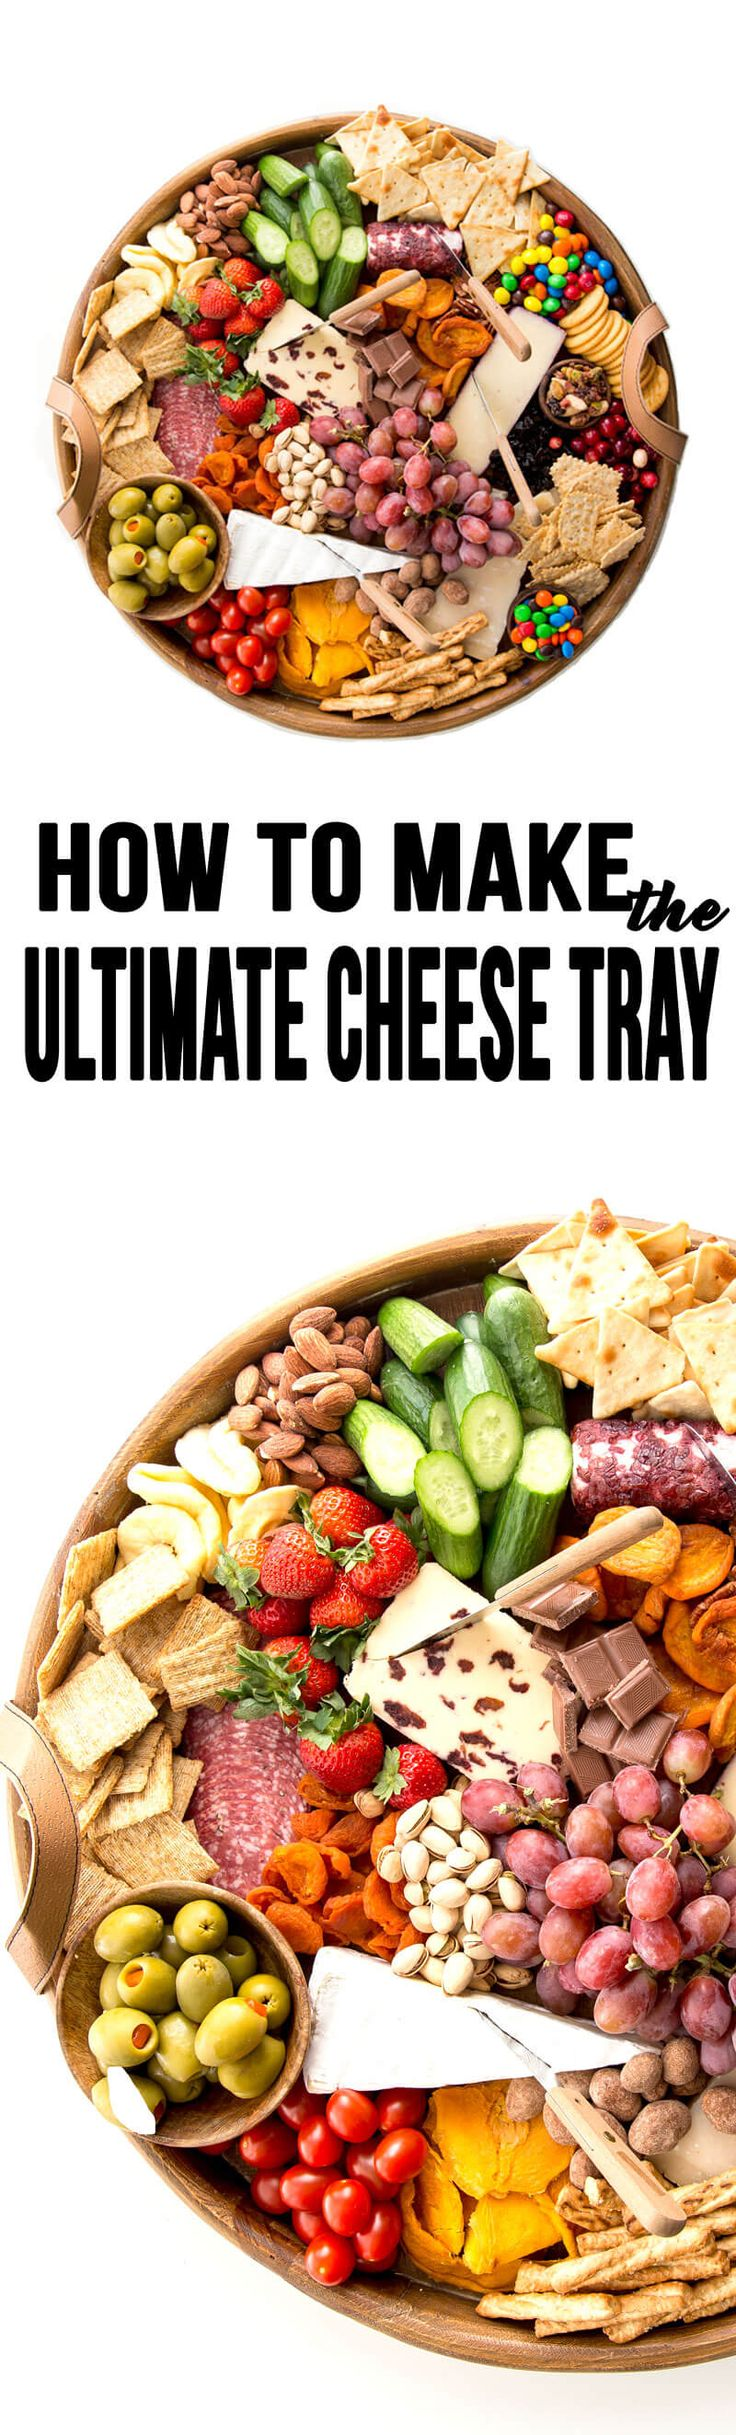 The Ultimate Cheese Tray just in time for the holiday parties! Your holiday won't be complete without this! #cheesetray #cheeseboard #cheese #chocolate #holidayfood #holidaysnack #food